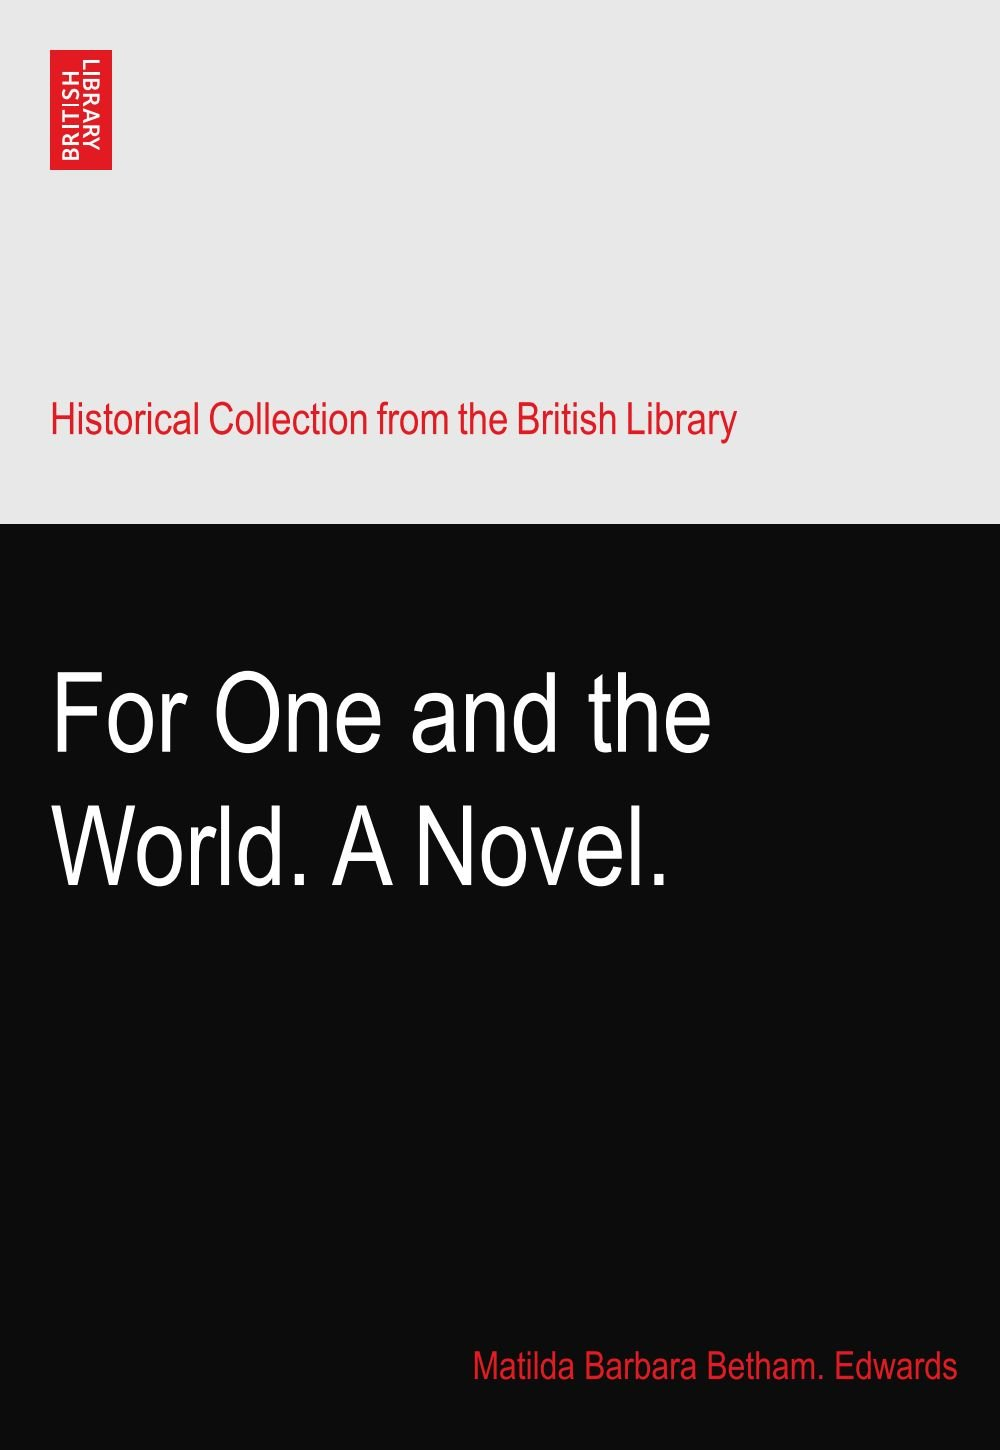 For One and the World. A Novel. PDF